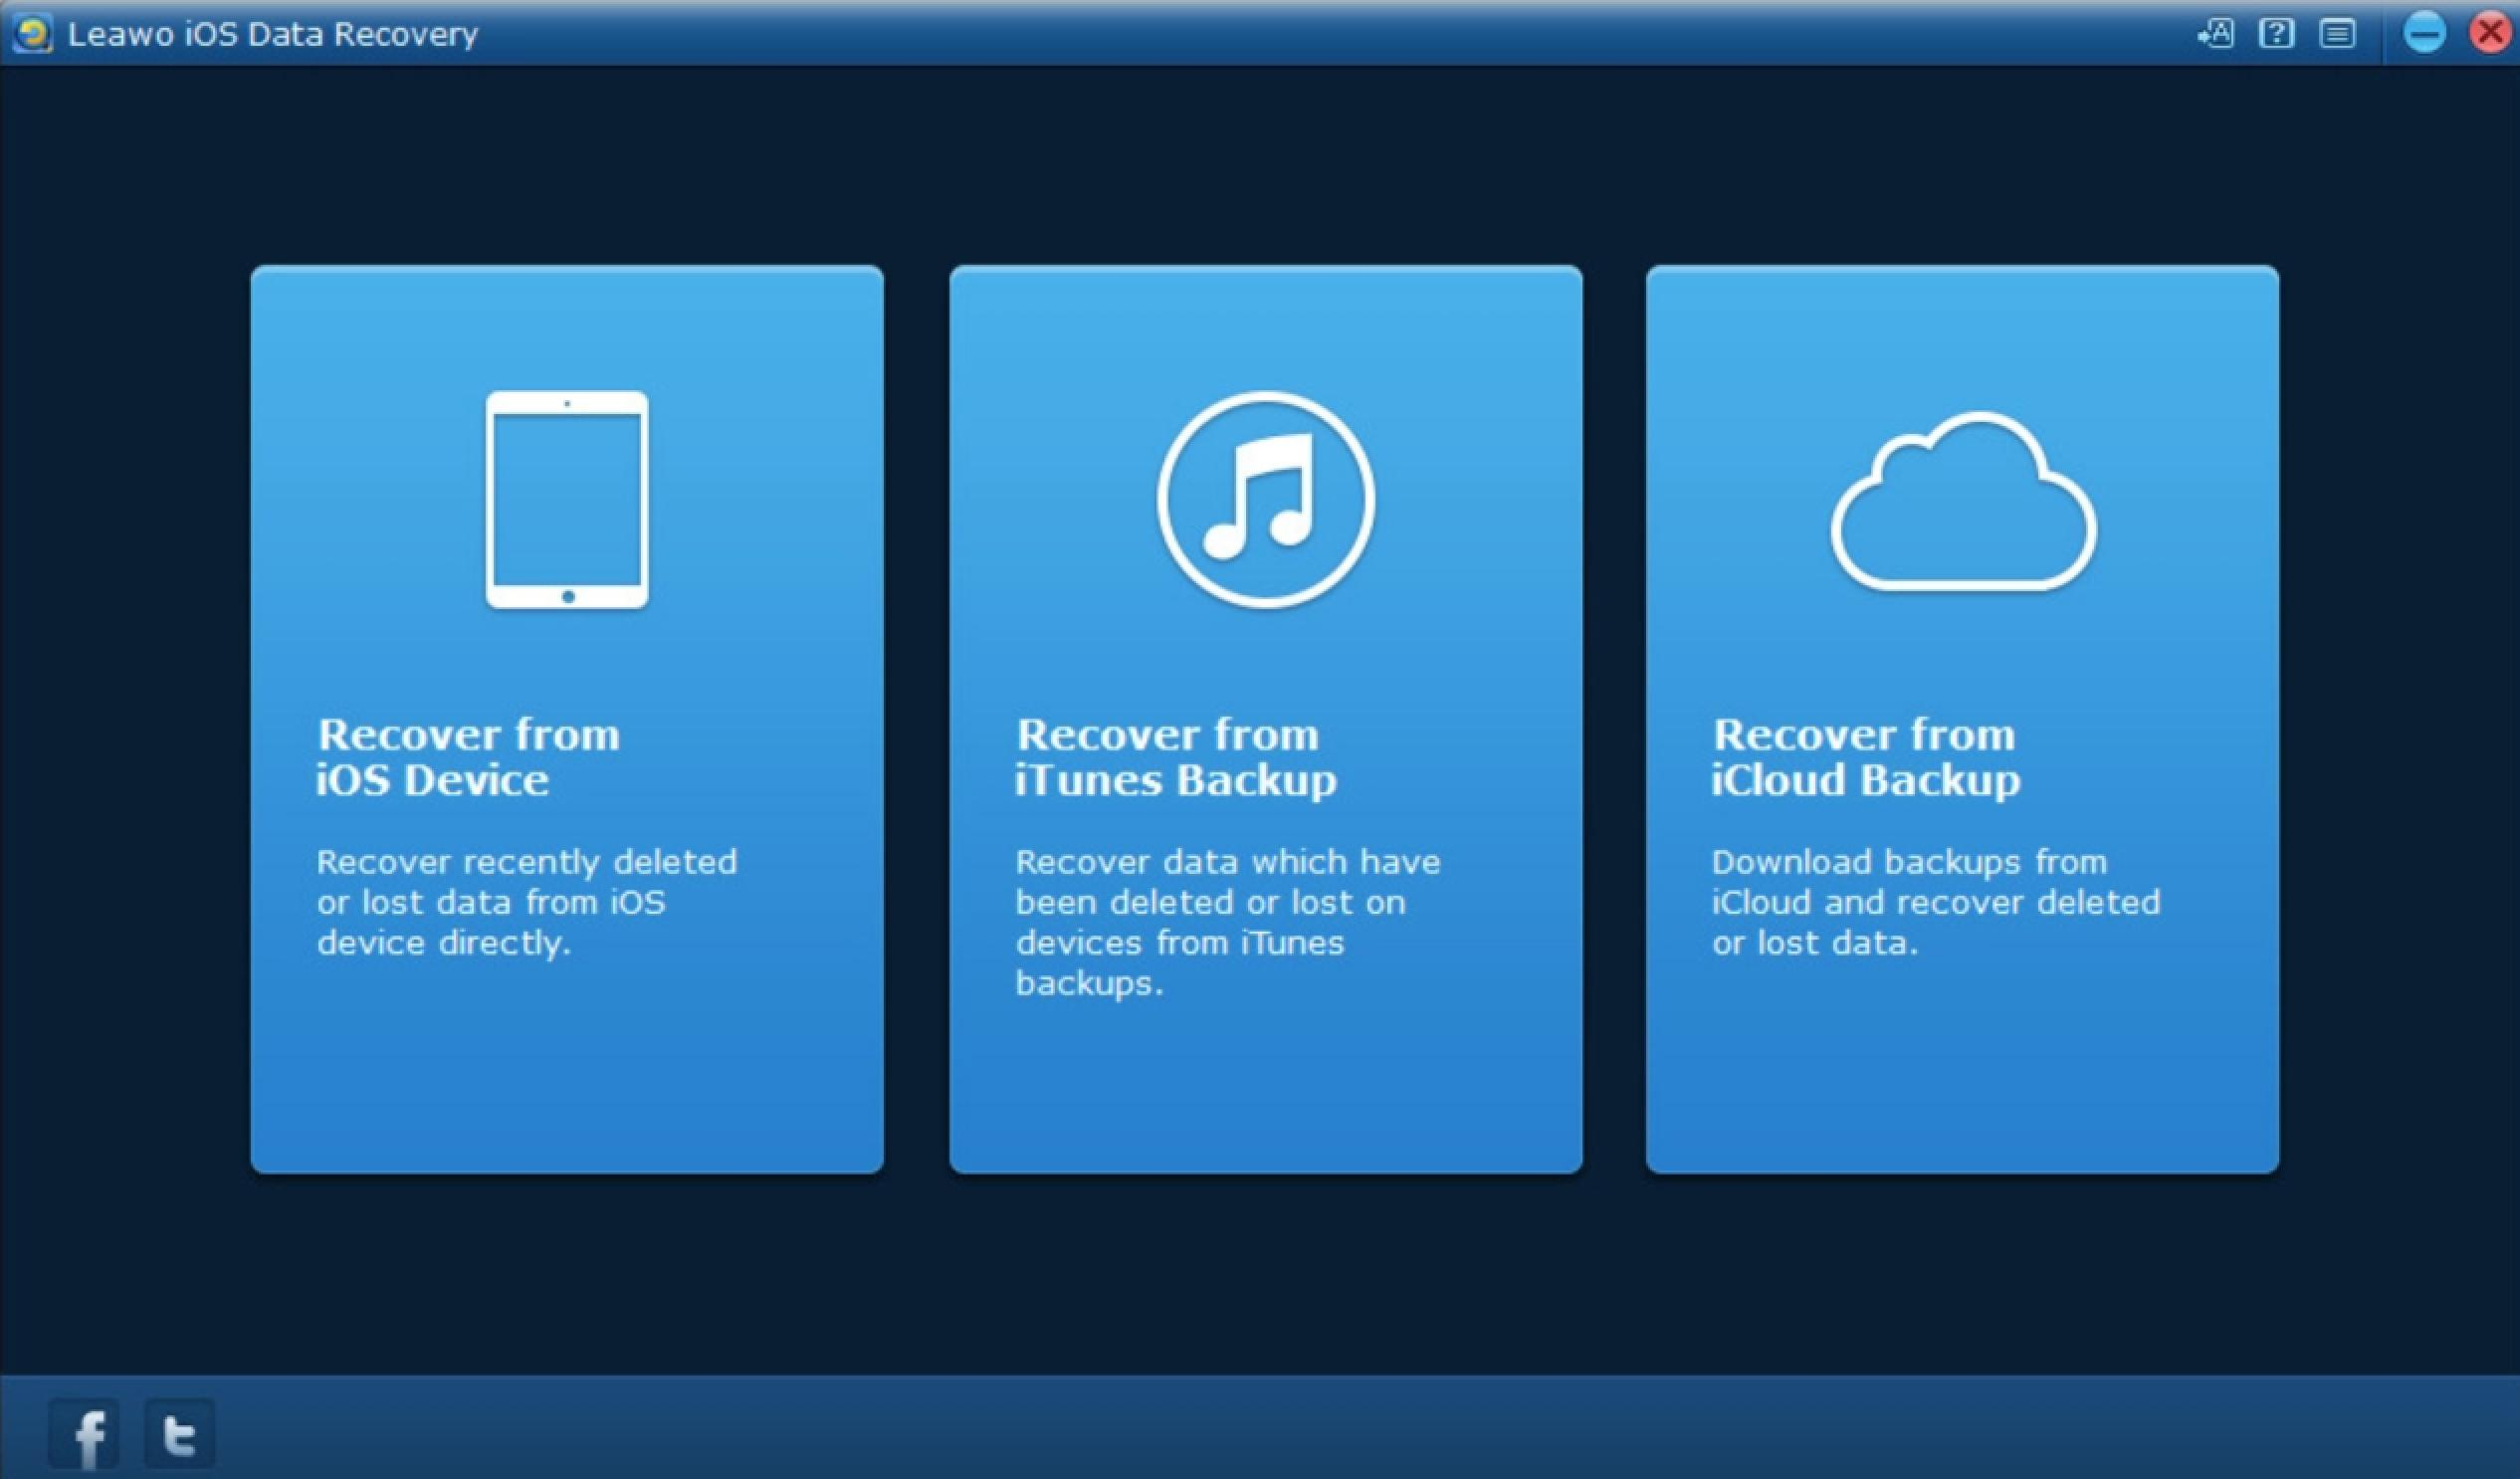 recover-data-with-Leawo-iOS-Data-Recovery-01